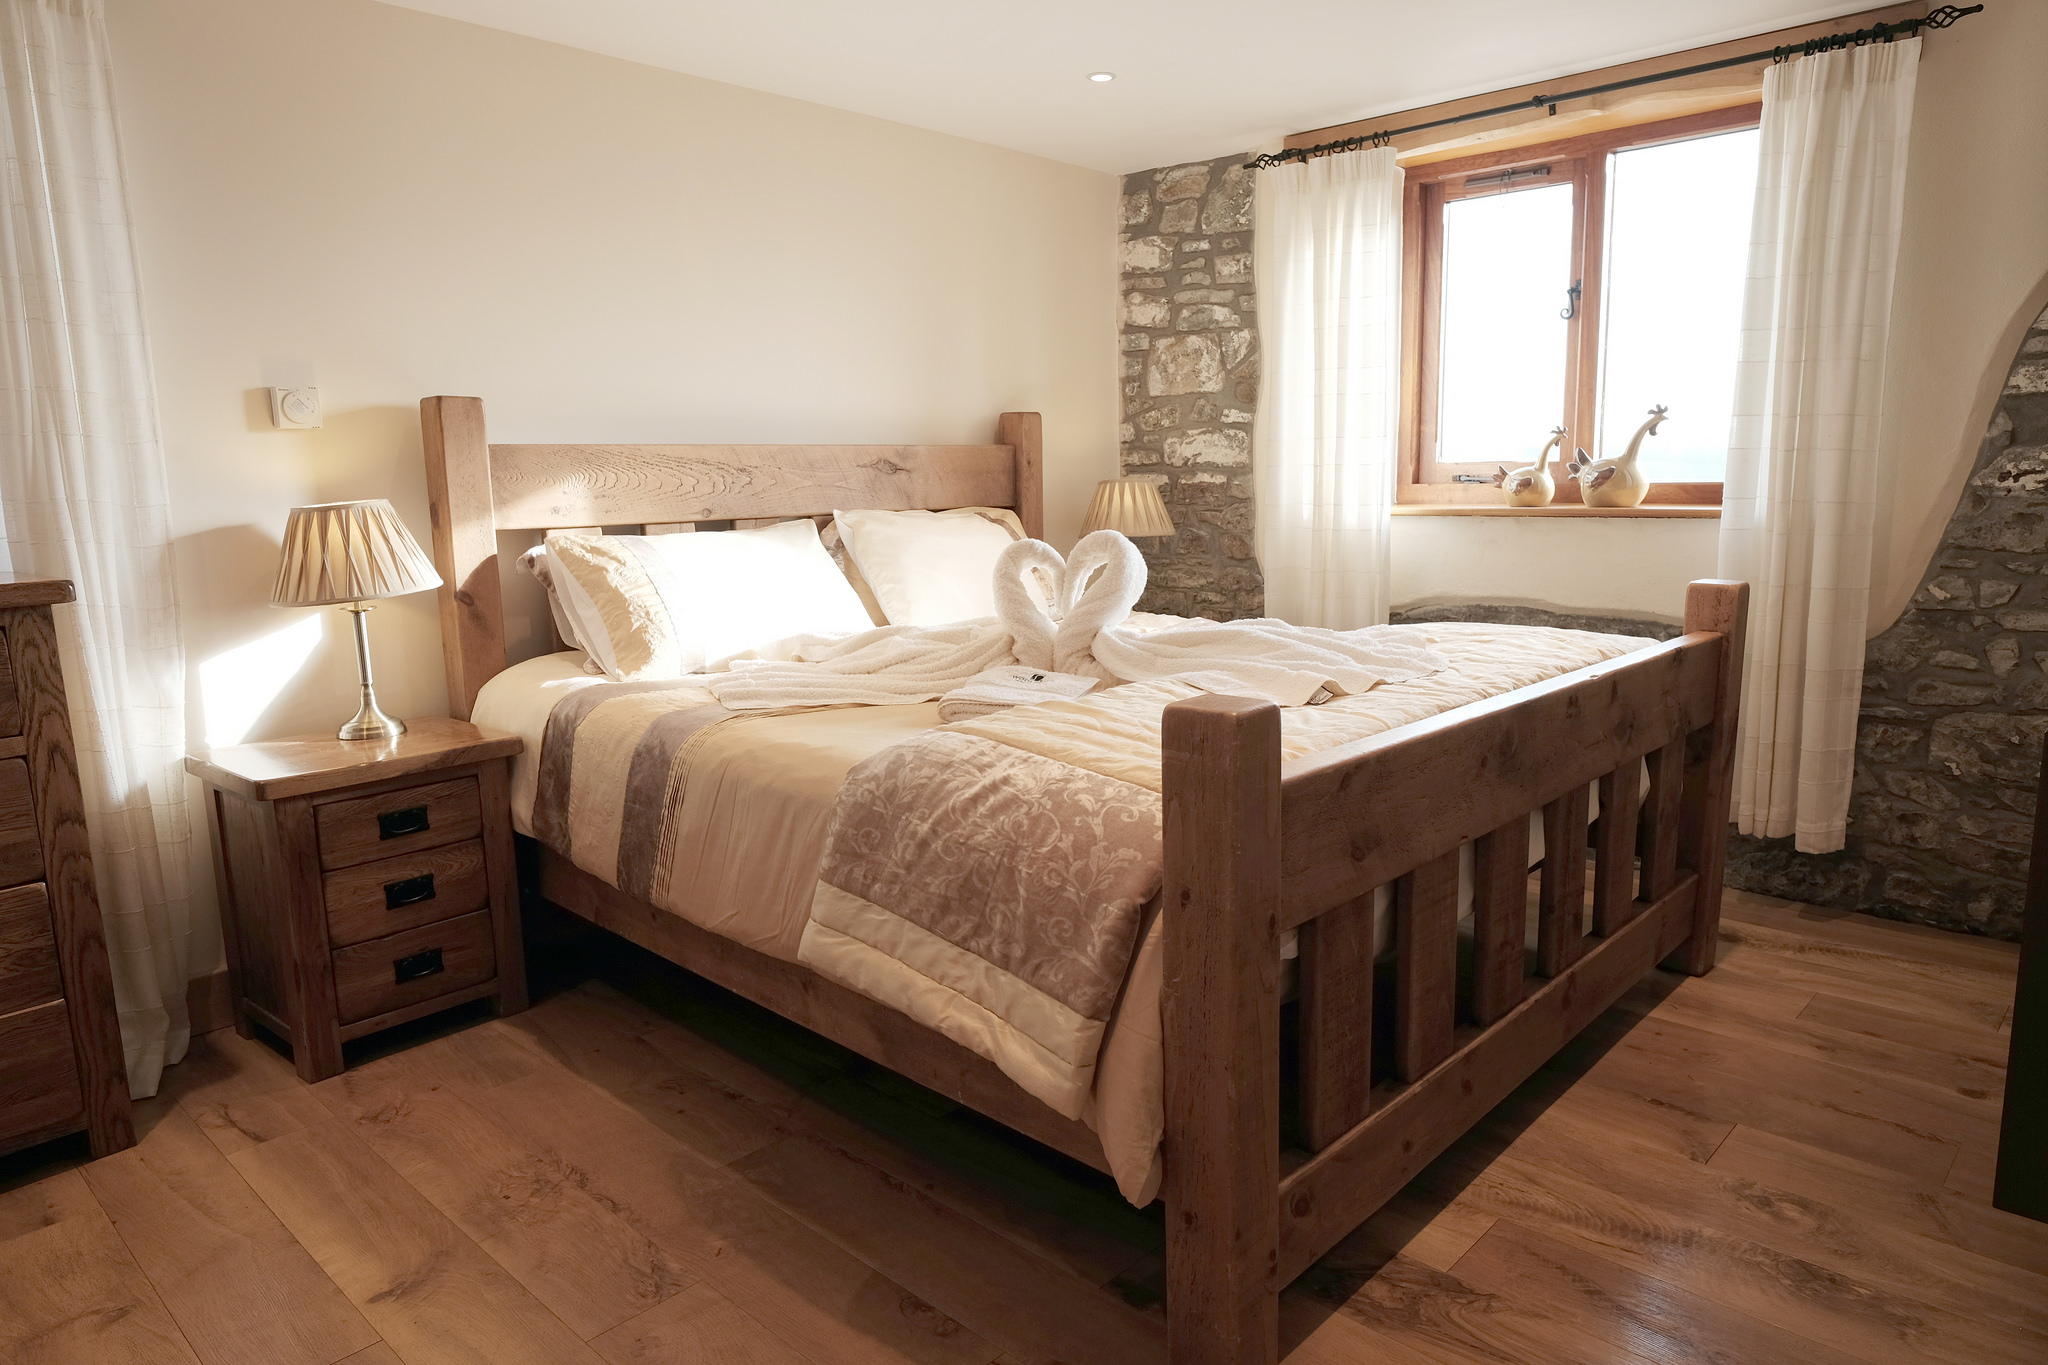 Super king-size Canadian Pine plank bed